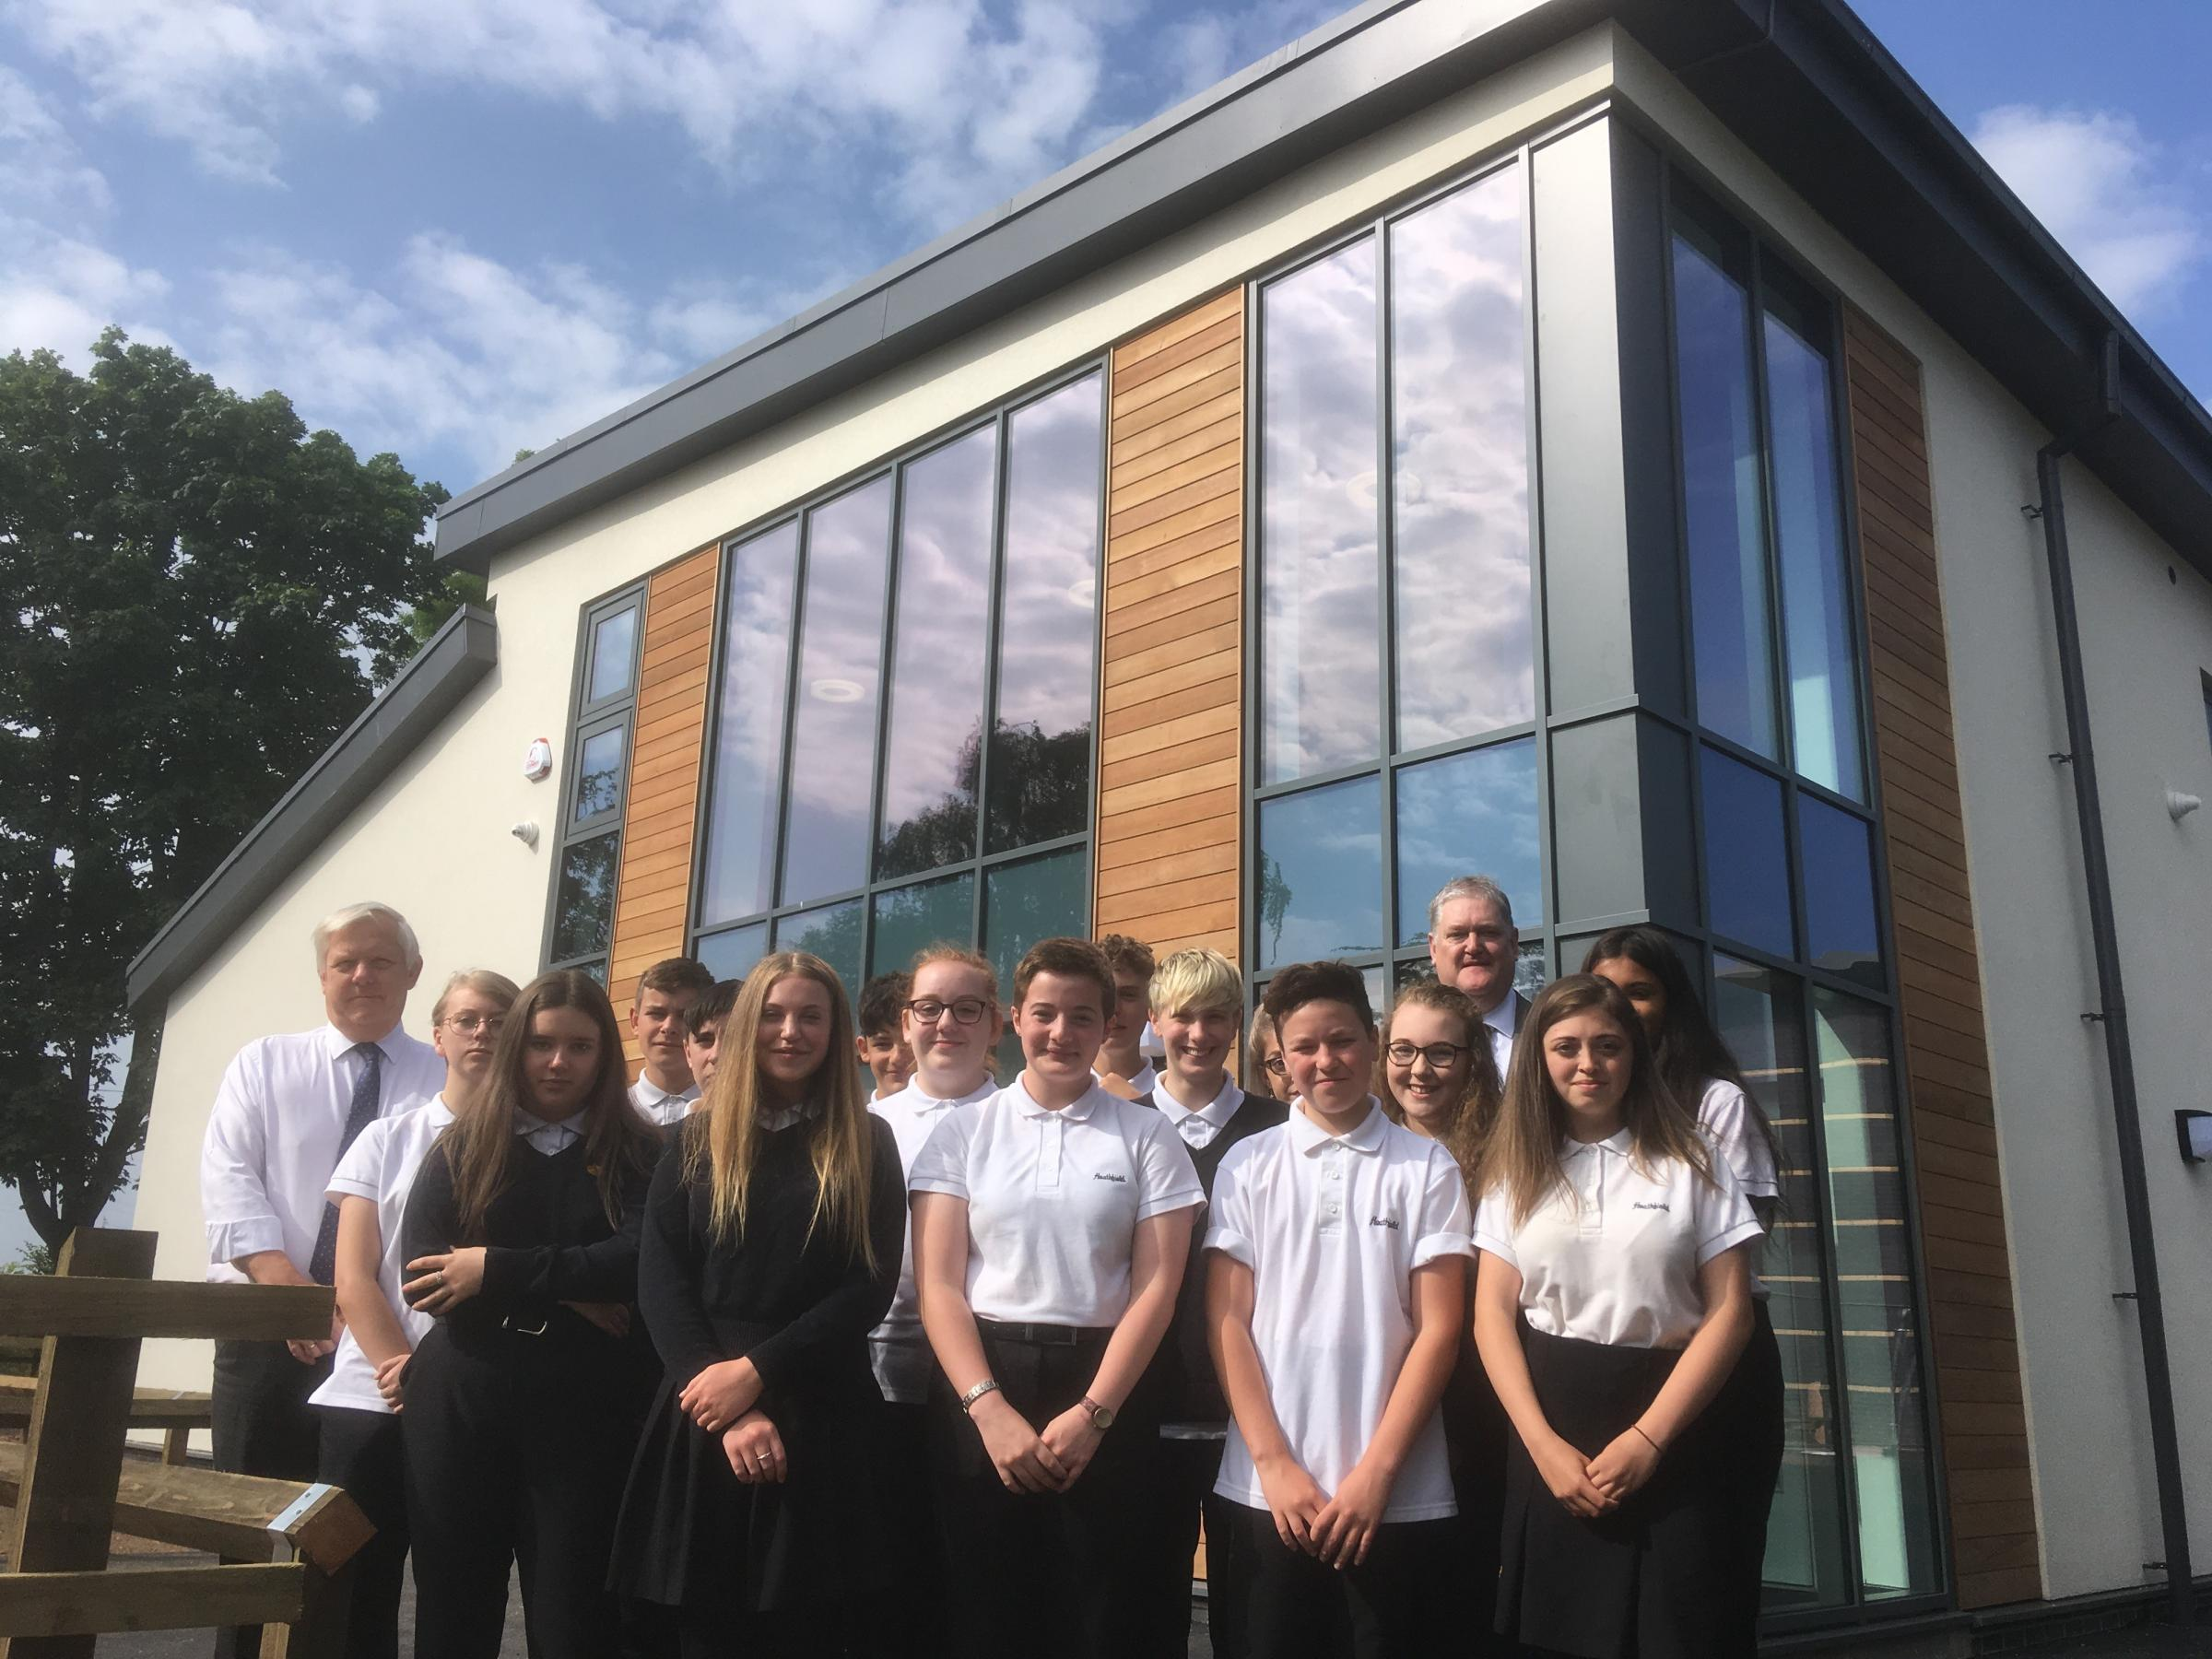 COMPLETE: Heathfield students with County Council leader David Fothergill outside the new building